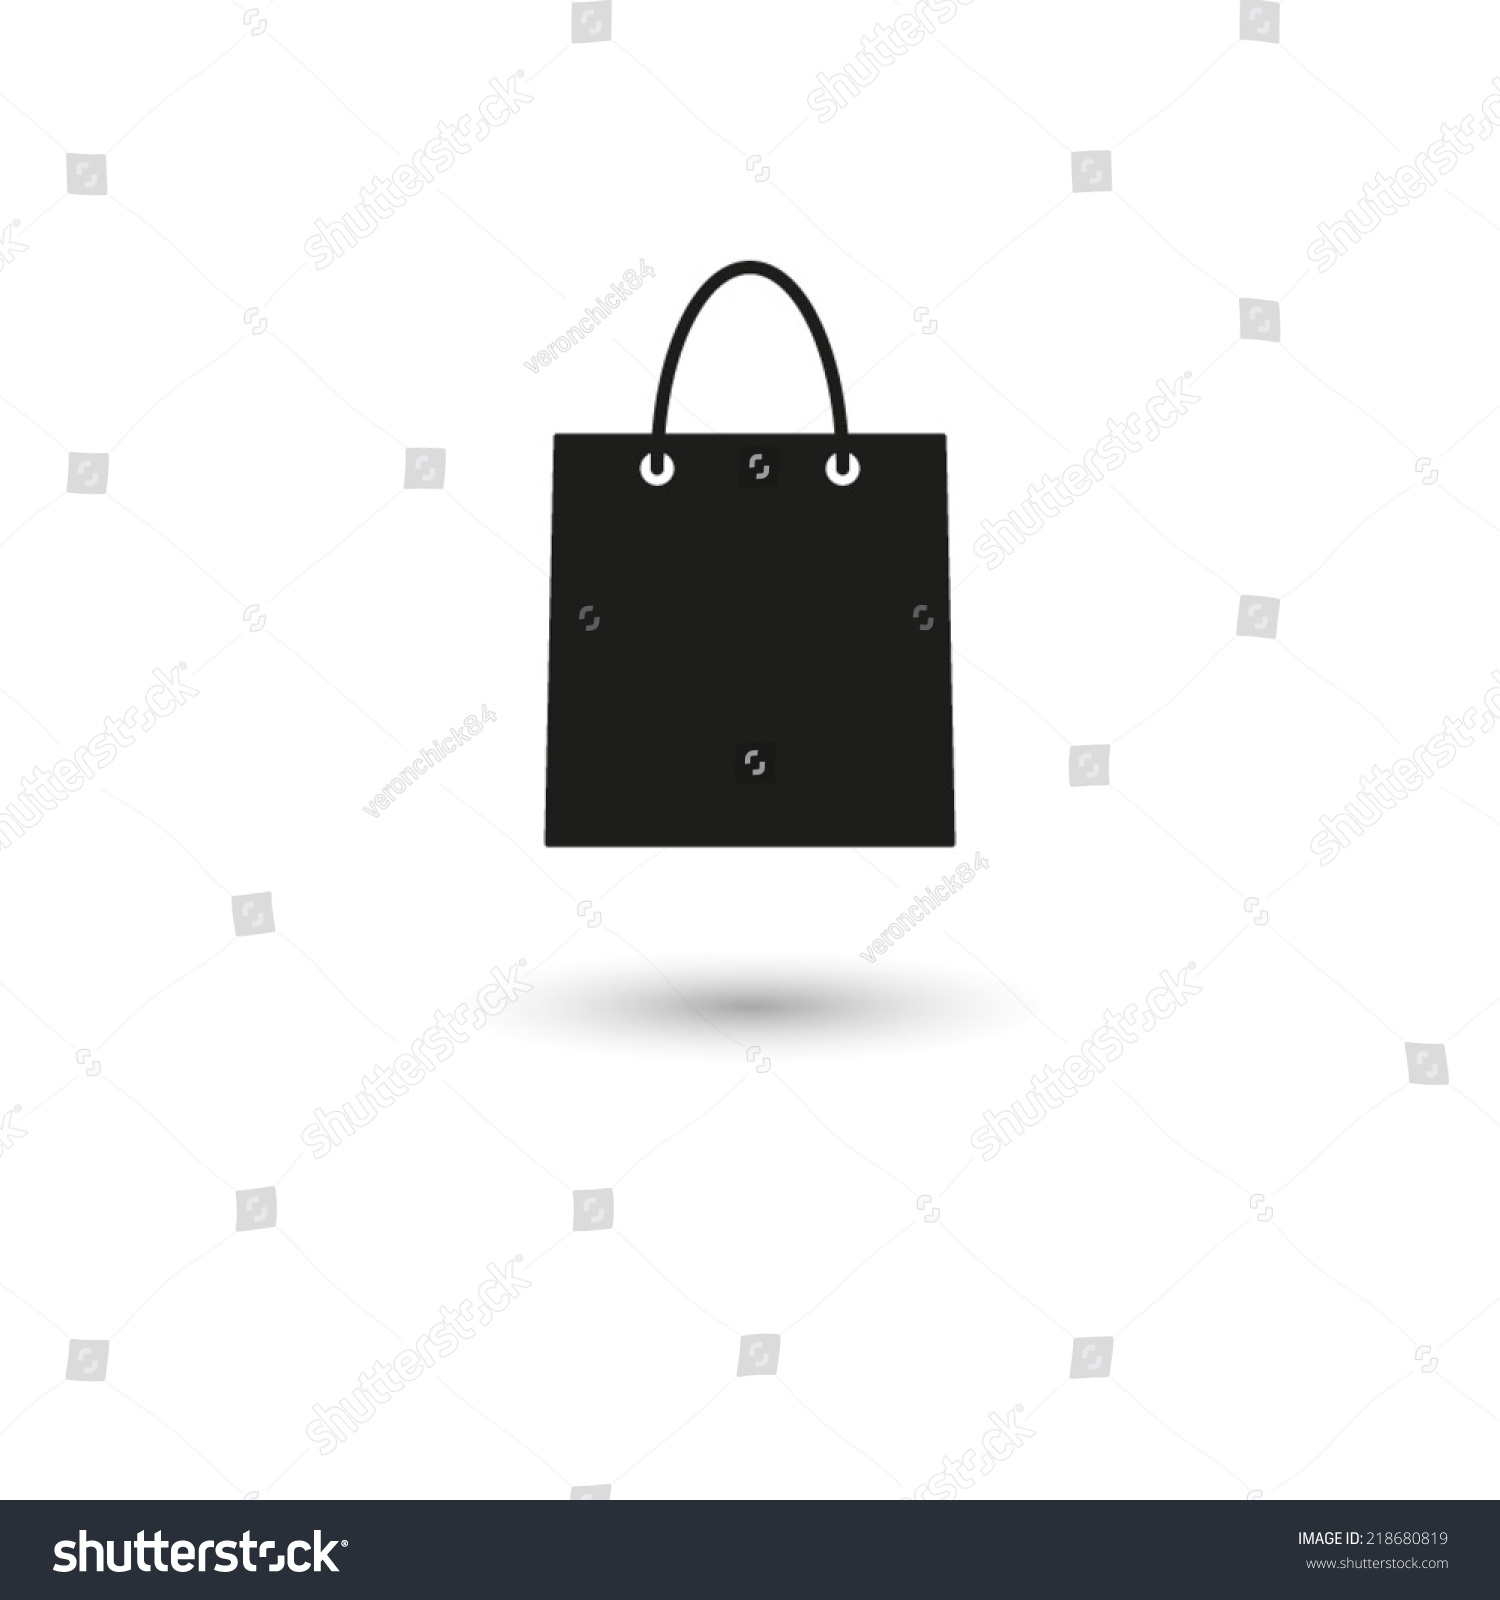 Shopping Bag Vector Icon Stock Vector 218680819 - Shutterstock